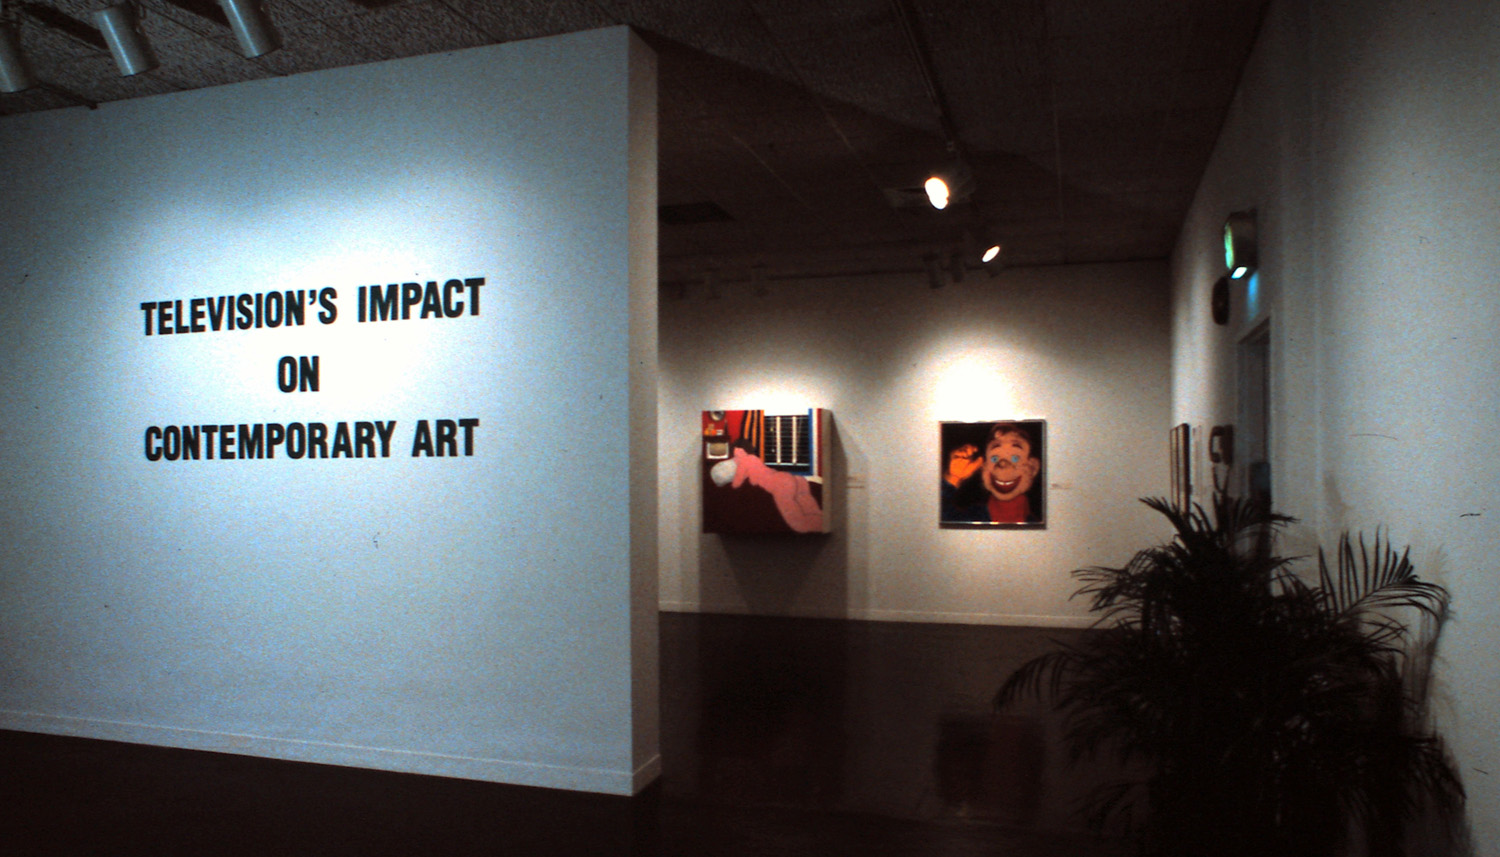 Installation view, with paintings by Tom Wesselman and Andy Warhol. All installation photographs by Phyllis Bilick.